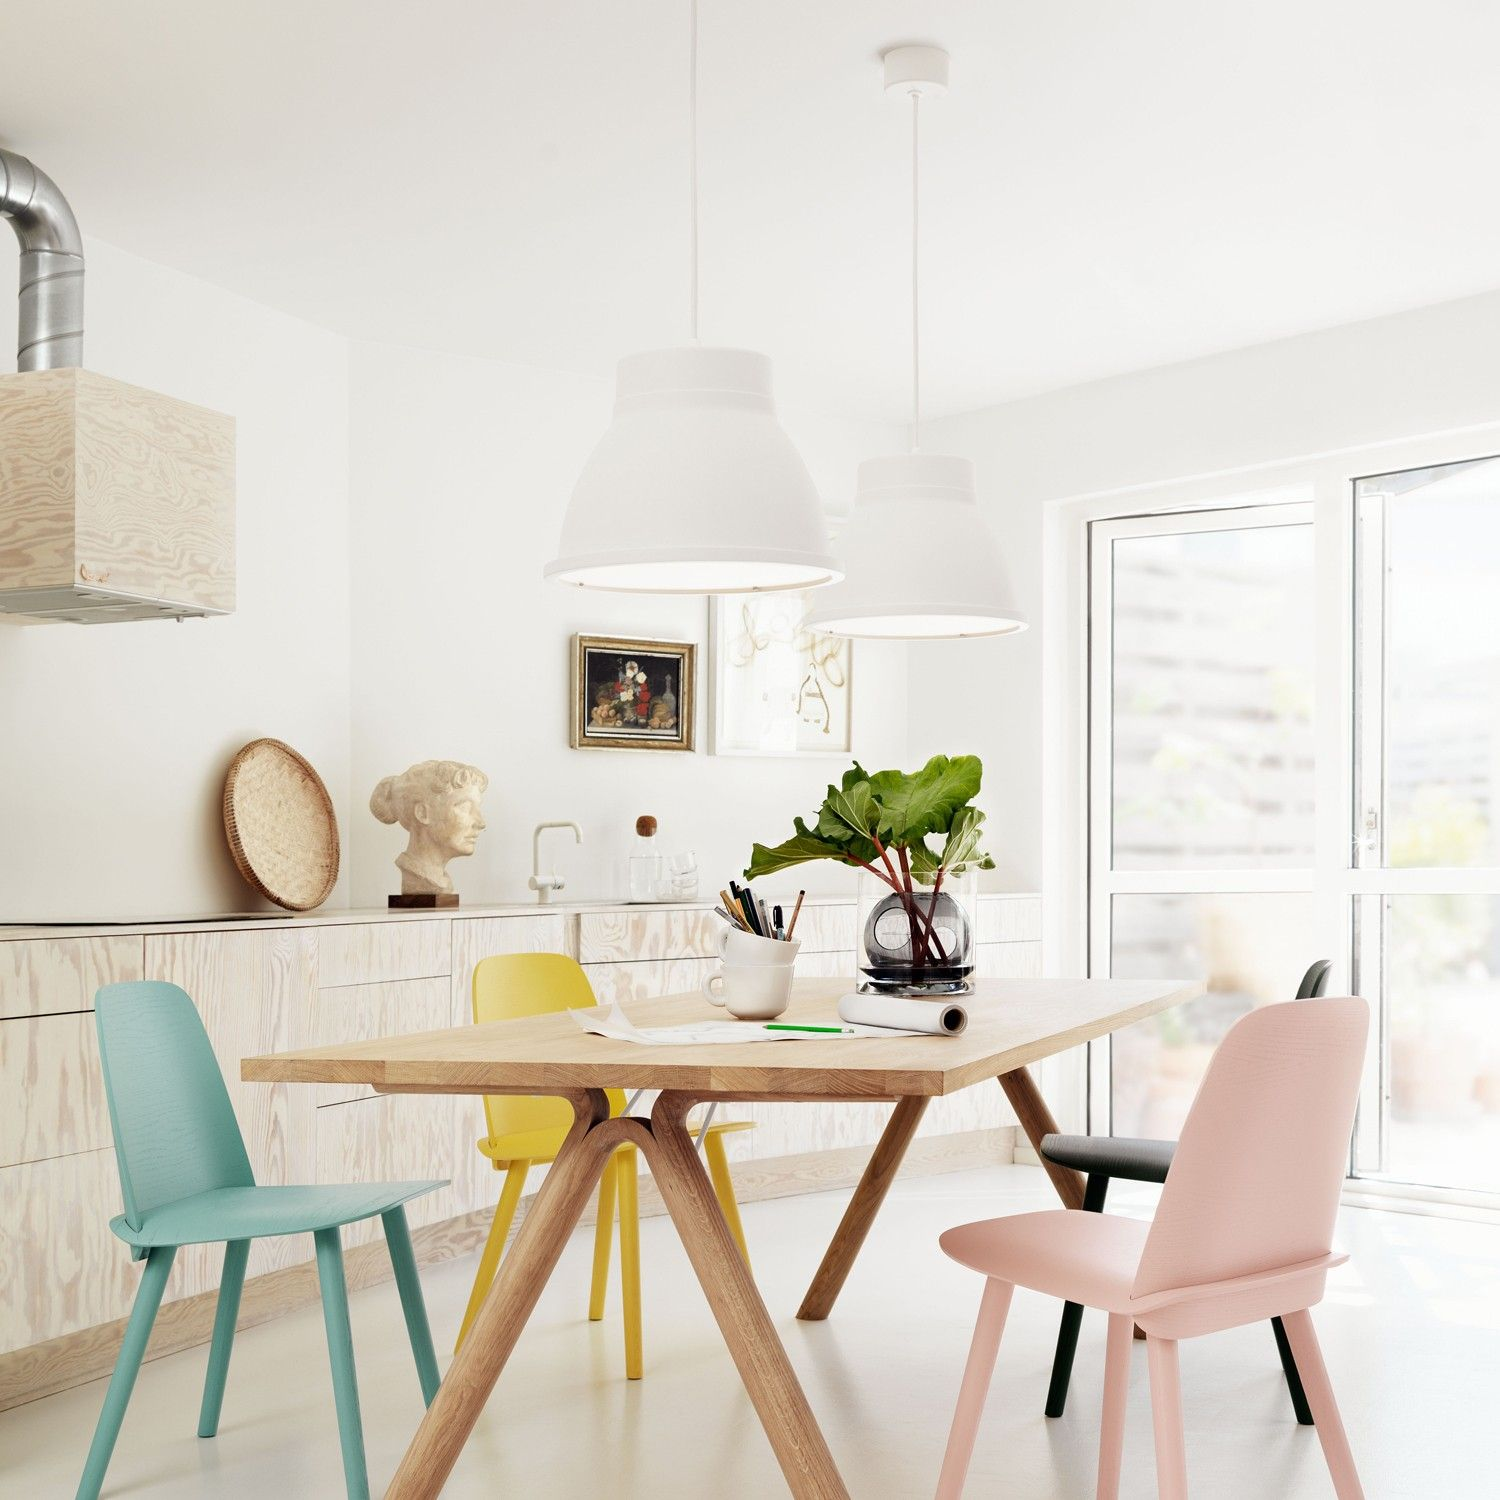 These Pretty Pastel Dining Chairs Add Some Unique Feminine Flair Prepossessing Simple Dining Room Decorating Design